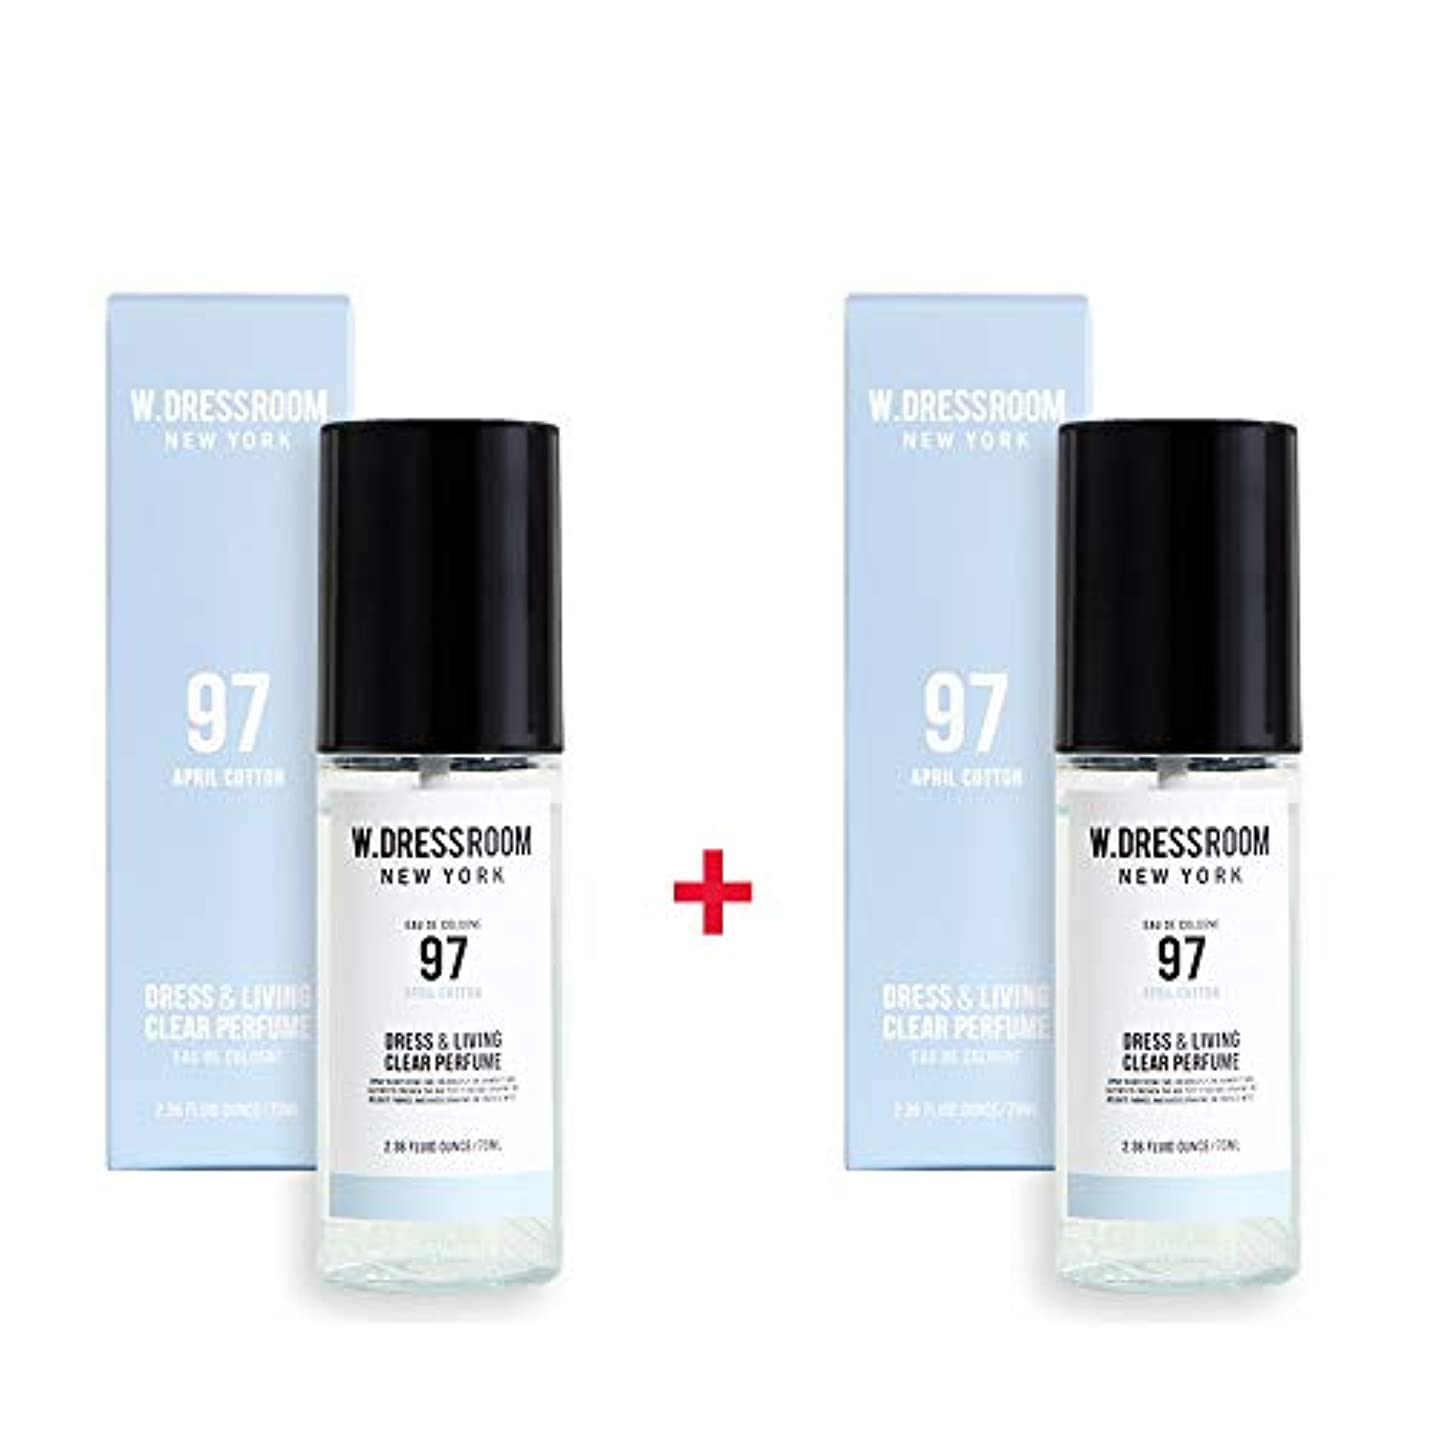 ジャーナリスト懇願するタイヤW.DRESSROOM Dress & Living Clear Perfume 70ml (No 97 April Cotton)+(No 97 April Cotton)